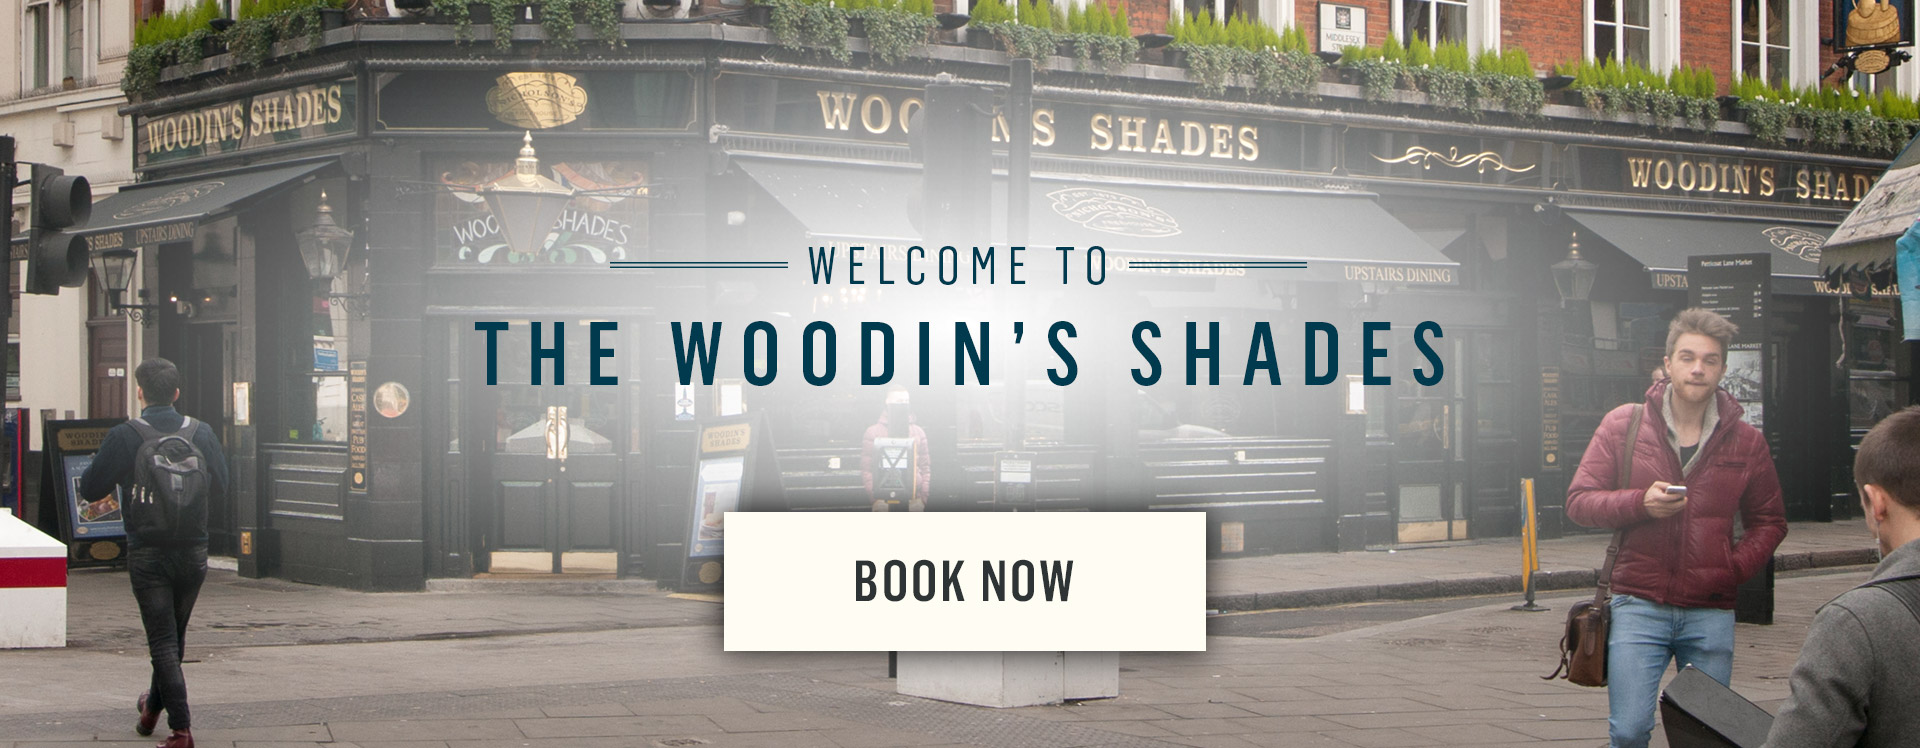 Welcome to The Woodins Shades - Book Now